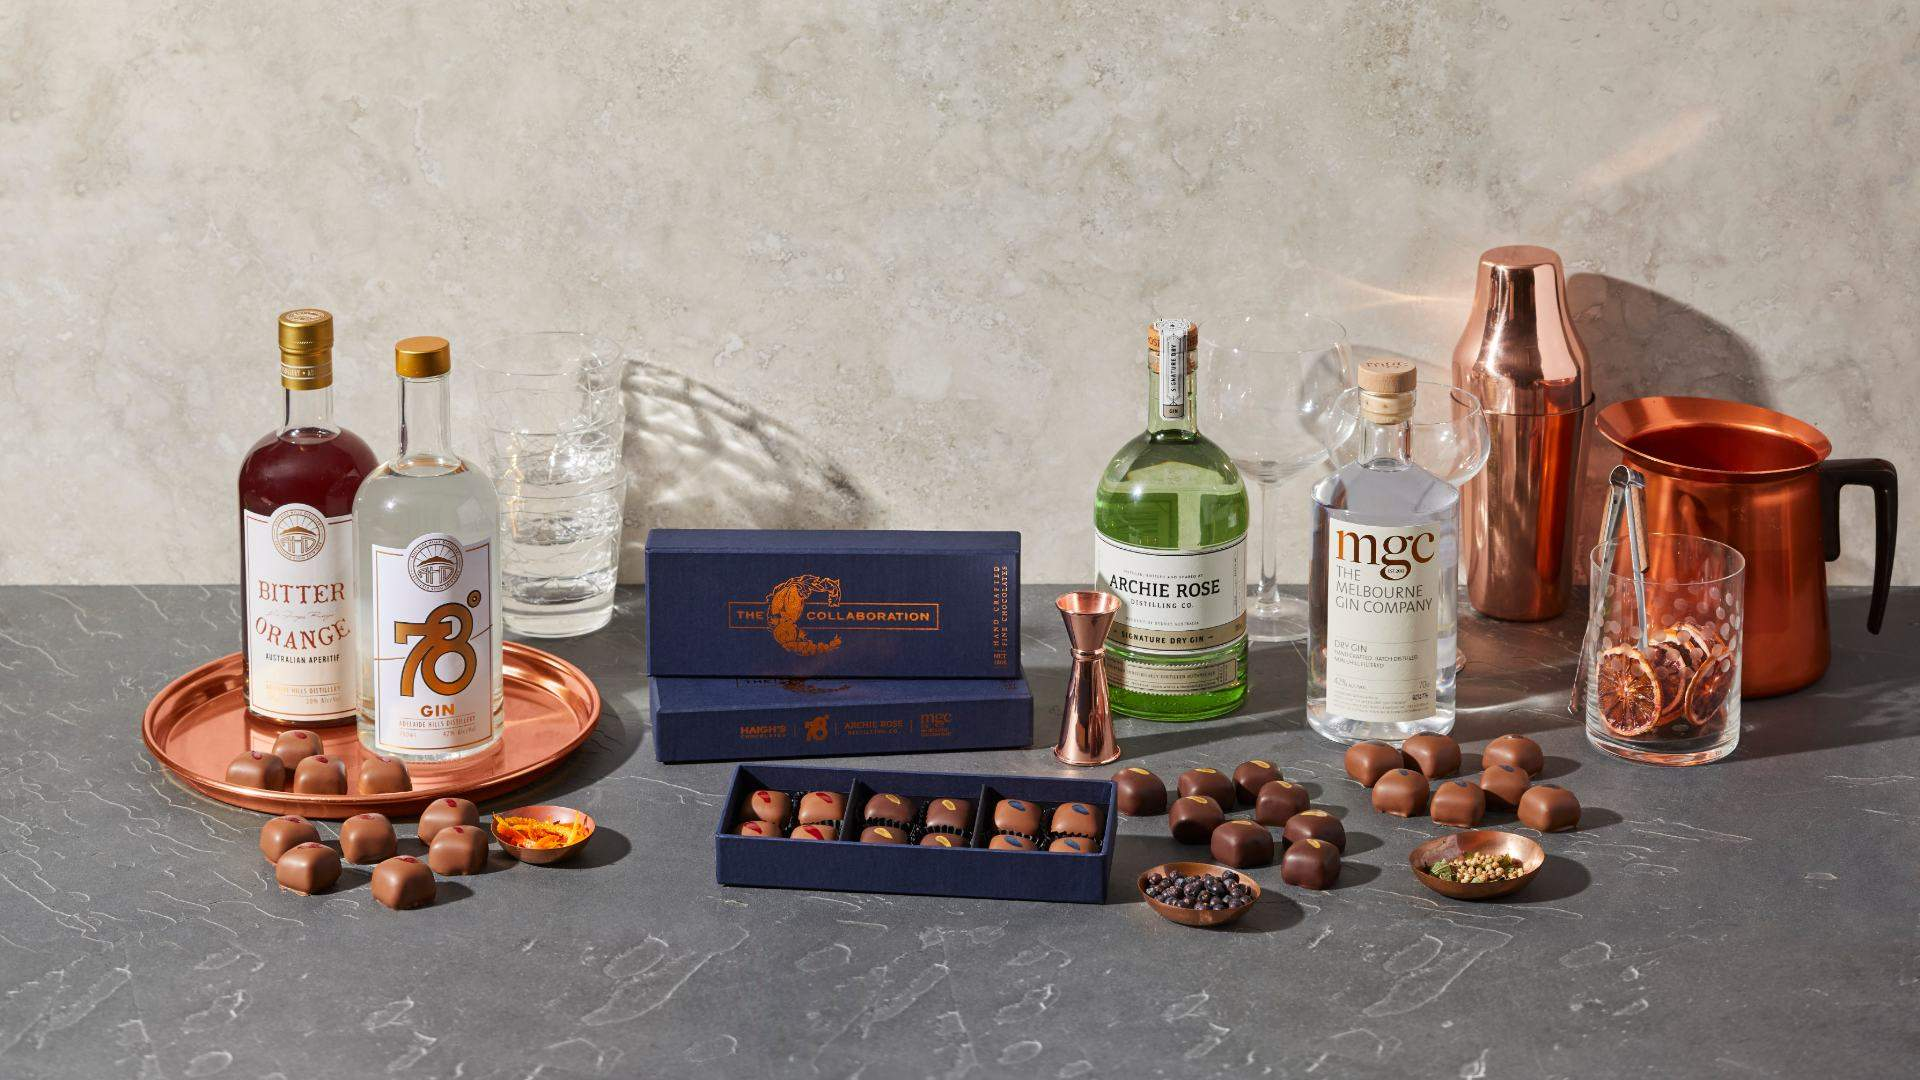 Haigh's Has Unveiled a Boozy Chocolate Collaboration with Three Aussie Gin Distilleries